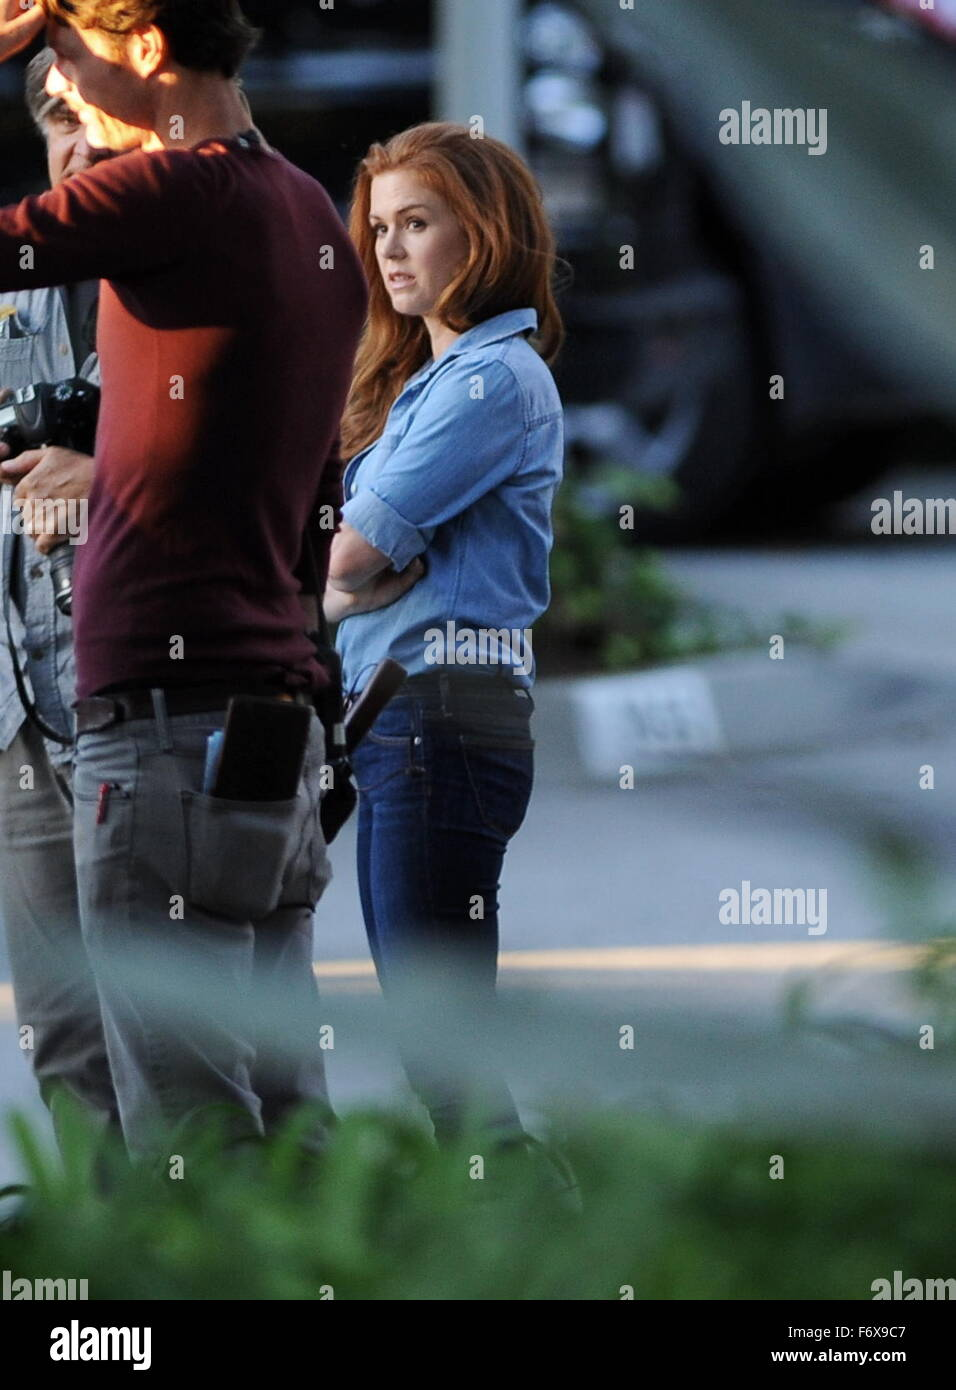 Image of: Amy Adams Actress Isla Fisher Filming Scene With Co Star Jake Gyllenhaal For Their New Drama Movie Alamy Actress Isla Fisher Filming Scene With Co Star Jake Gyllenhaal For